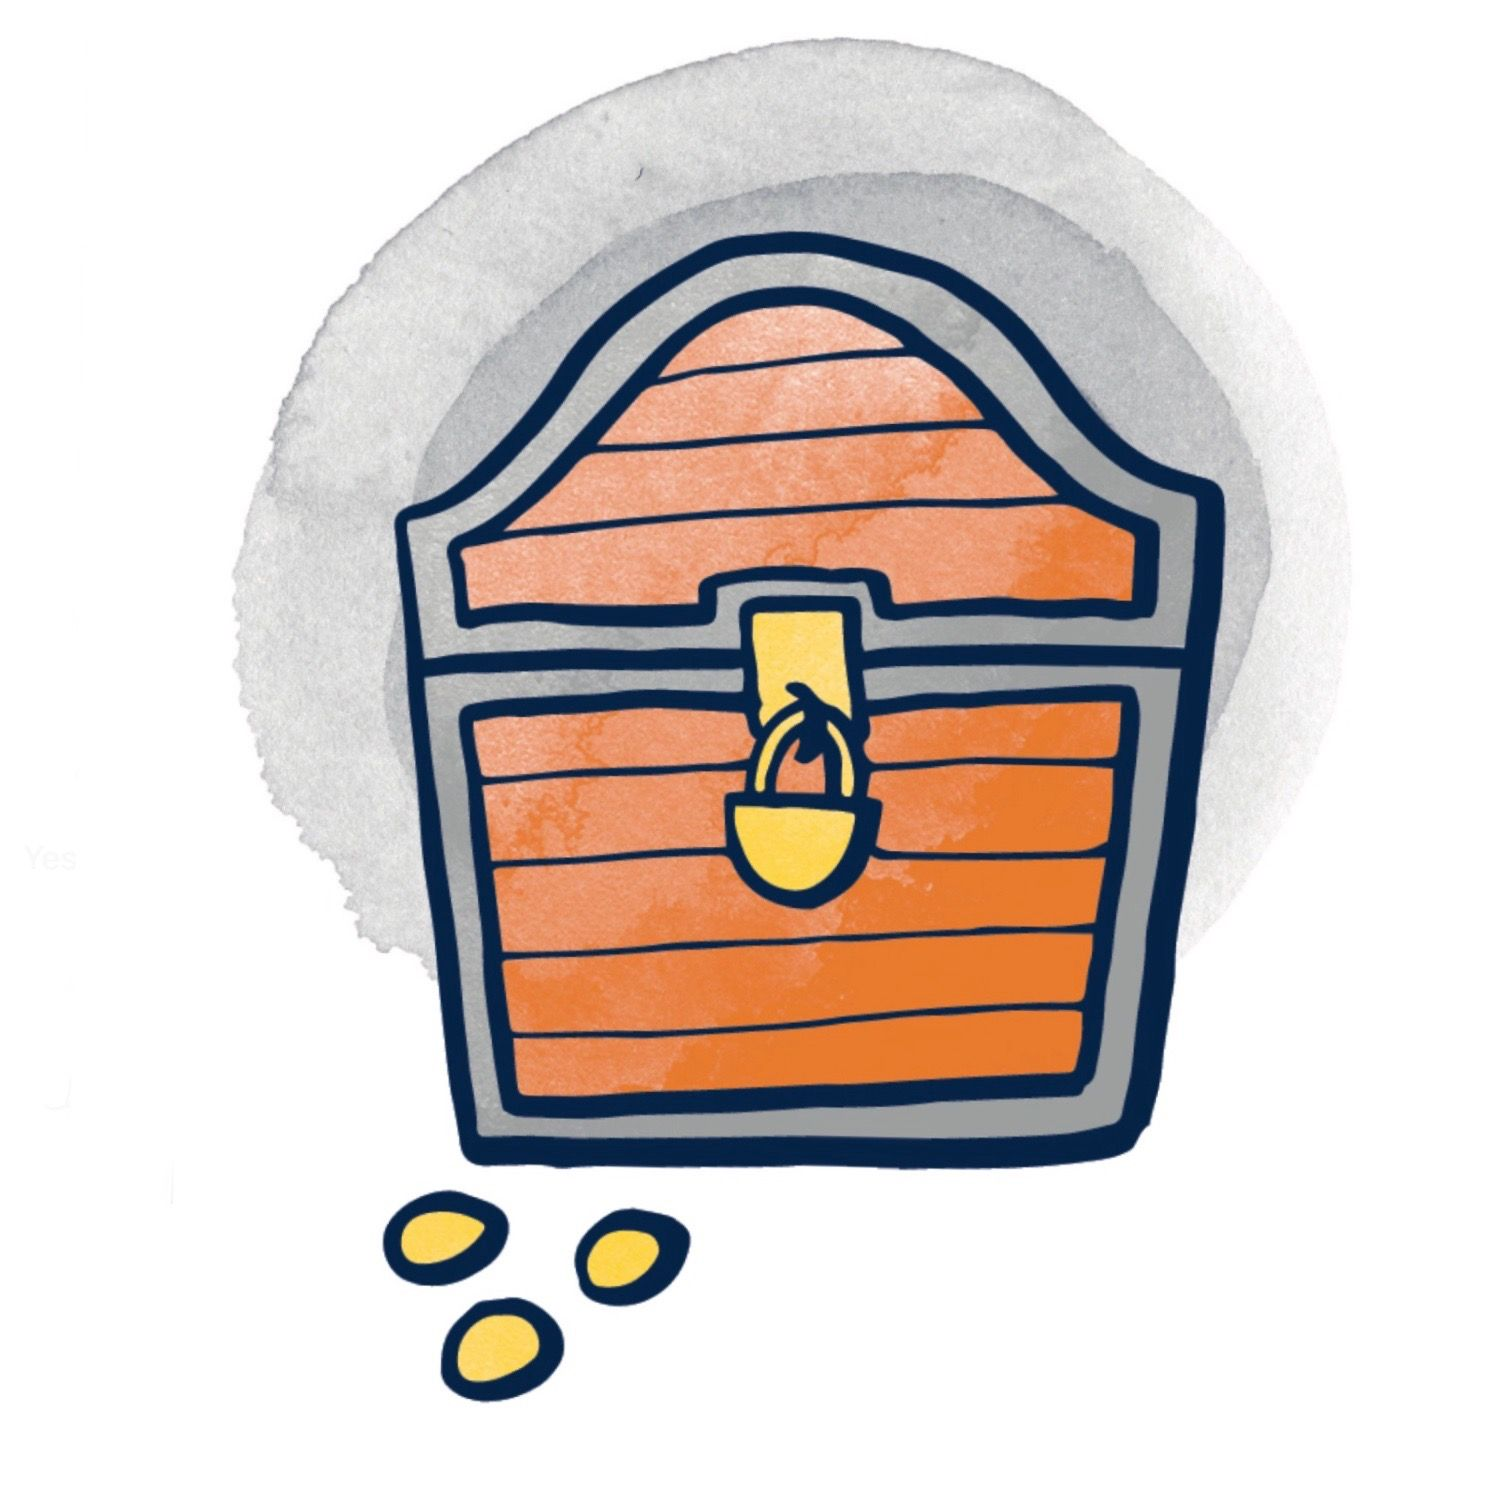 Treasure chest illustration for pirate theme card in story dealer treasure chest illustration for pirate theme card in story dealer card game for creative thinking publicscrutiny Image collections